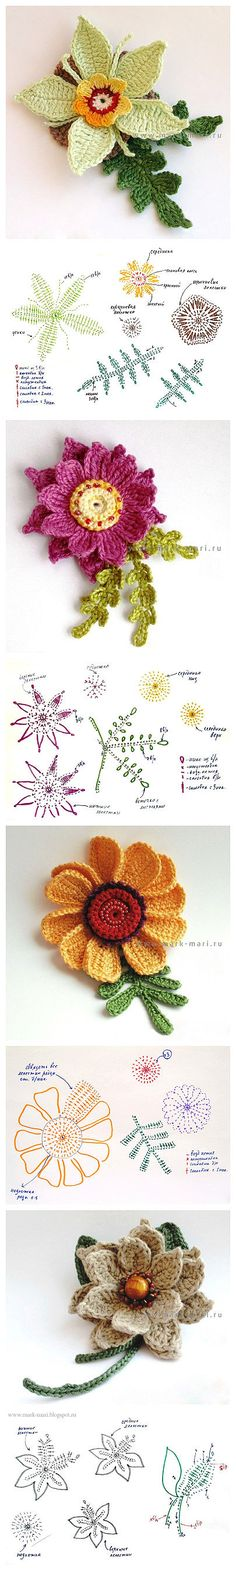 Most up-to-date Totally Free Crochet Flowers bunch Strategies If you learn just how to crochet the bloom, then you can certainly produce lots of projects. Crochet Motifs, Crochet Flower Patterns, Freeform Crochet, Thread Crochet, Irish Crochet, Crochet Designs, Crochet Lace, Crochet Stitches, Knitting Patterns